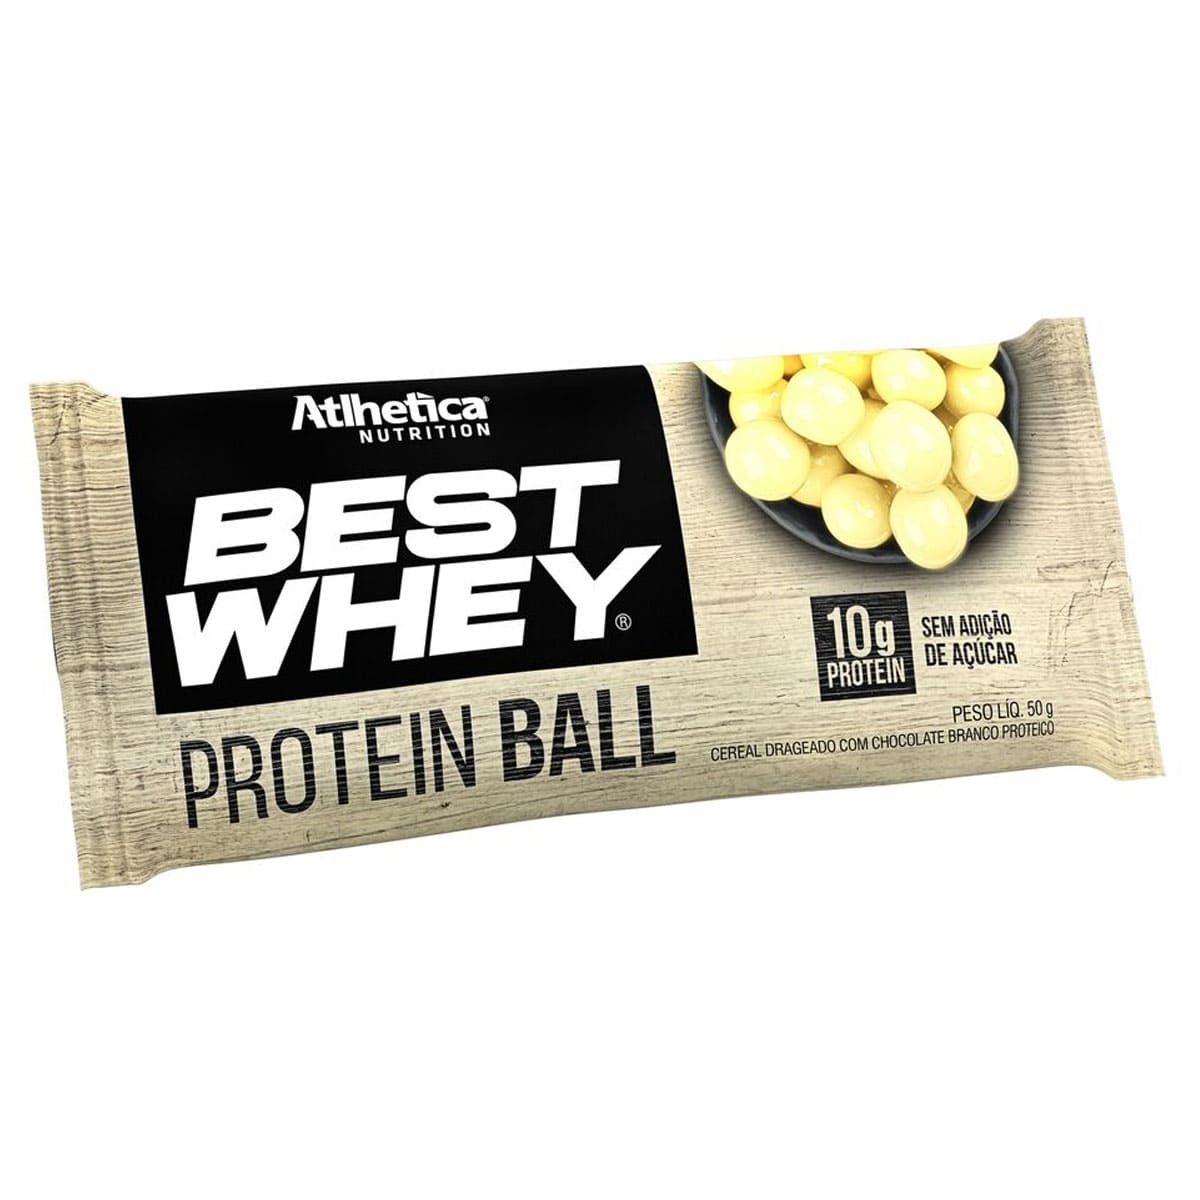 868f659e6 Best Whey Protein Balls (50 g) Chocolate Branco - Athletica Nutrition